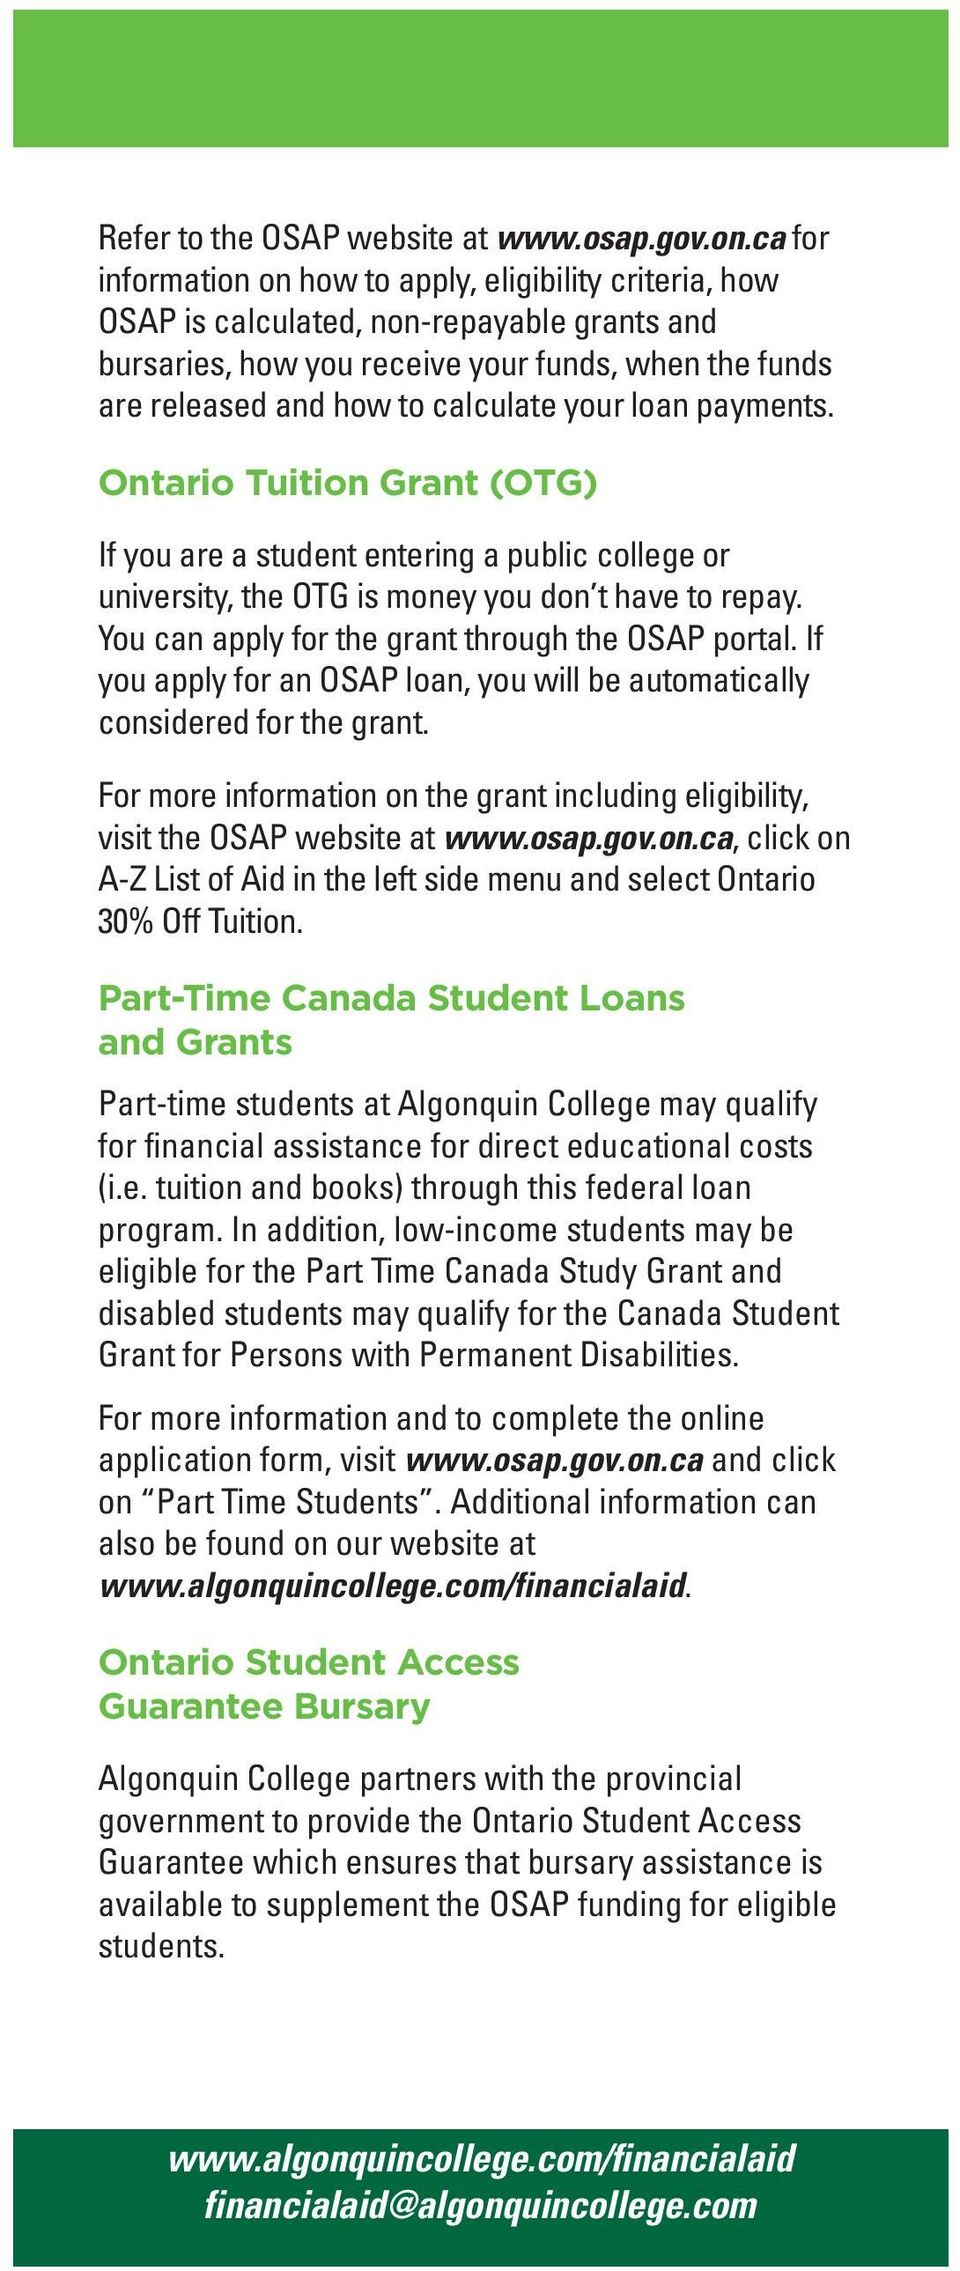 loan payments. Ontario Tuition Grant (OTG) If you are a student entering a public college or university, the OTG is money you don t have to repay. You can apply for the grant through the OSAP portal.